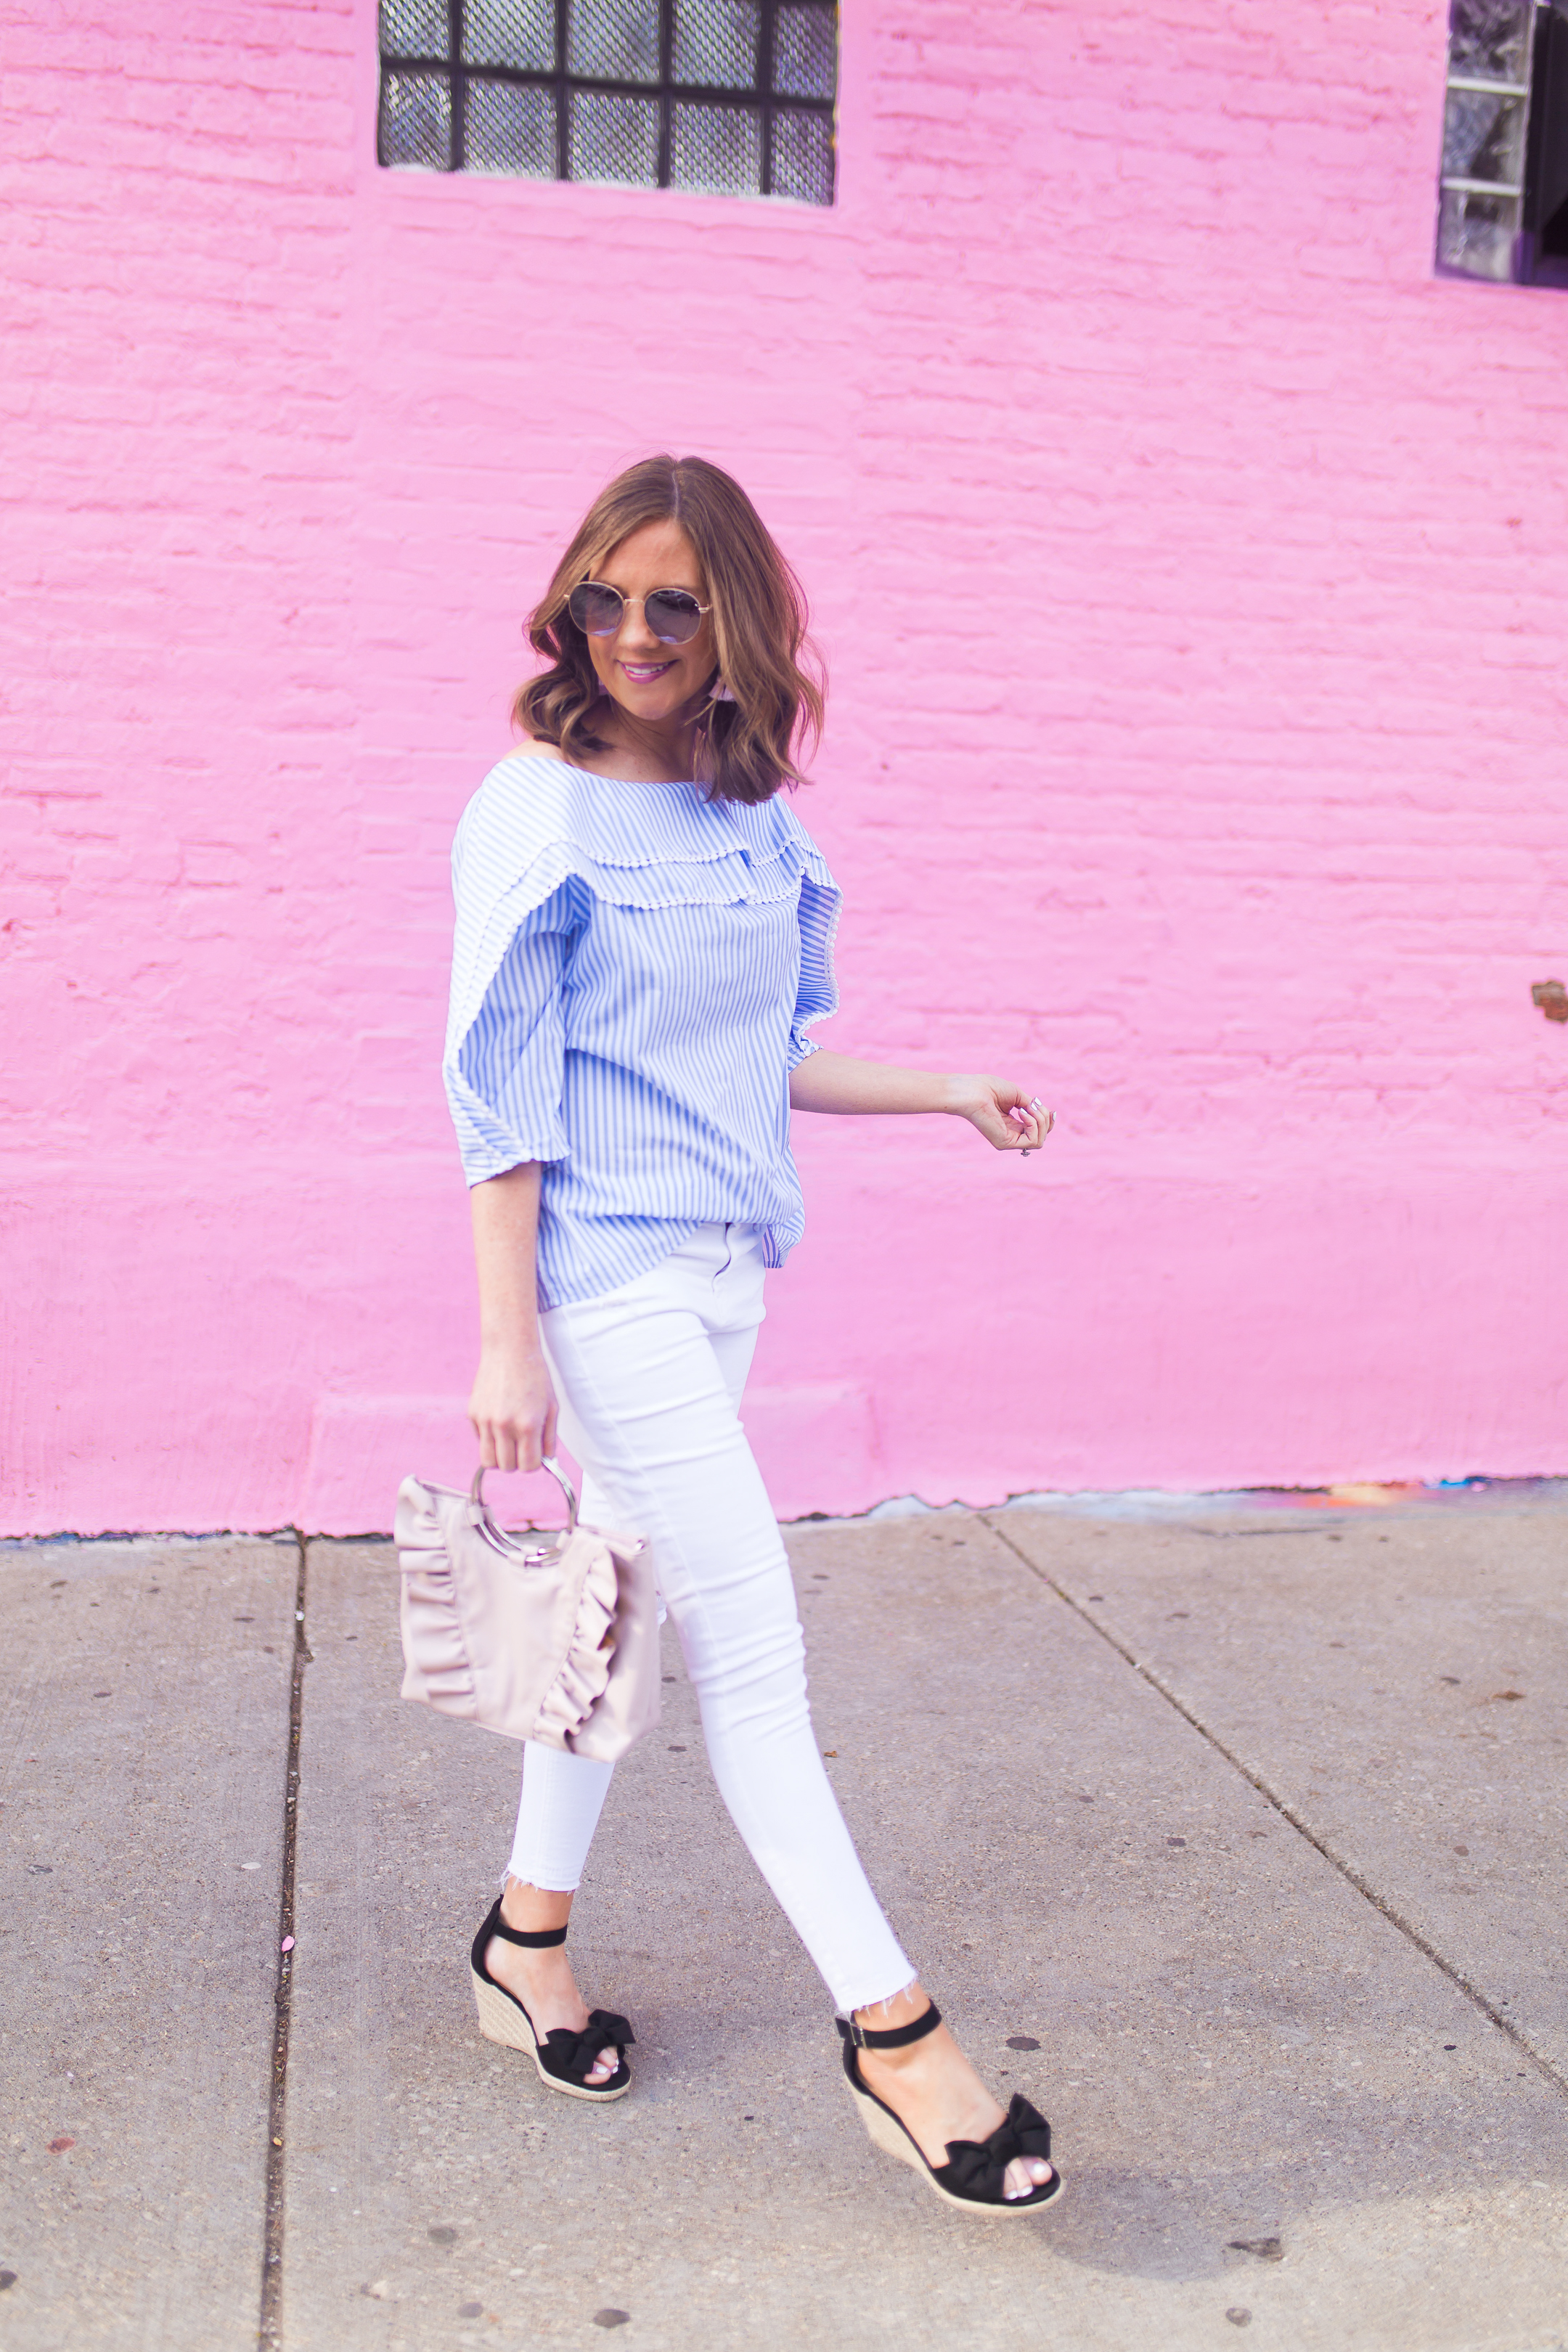 blue white pinstriped off the shoulder blouse with mini pompom trim, pink wall Chicago, bow wedges, ruffled pink bag with ring handle